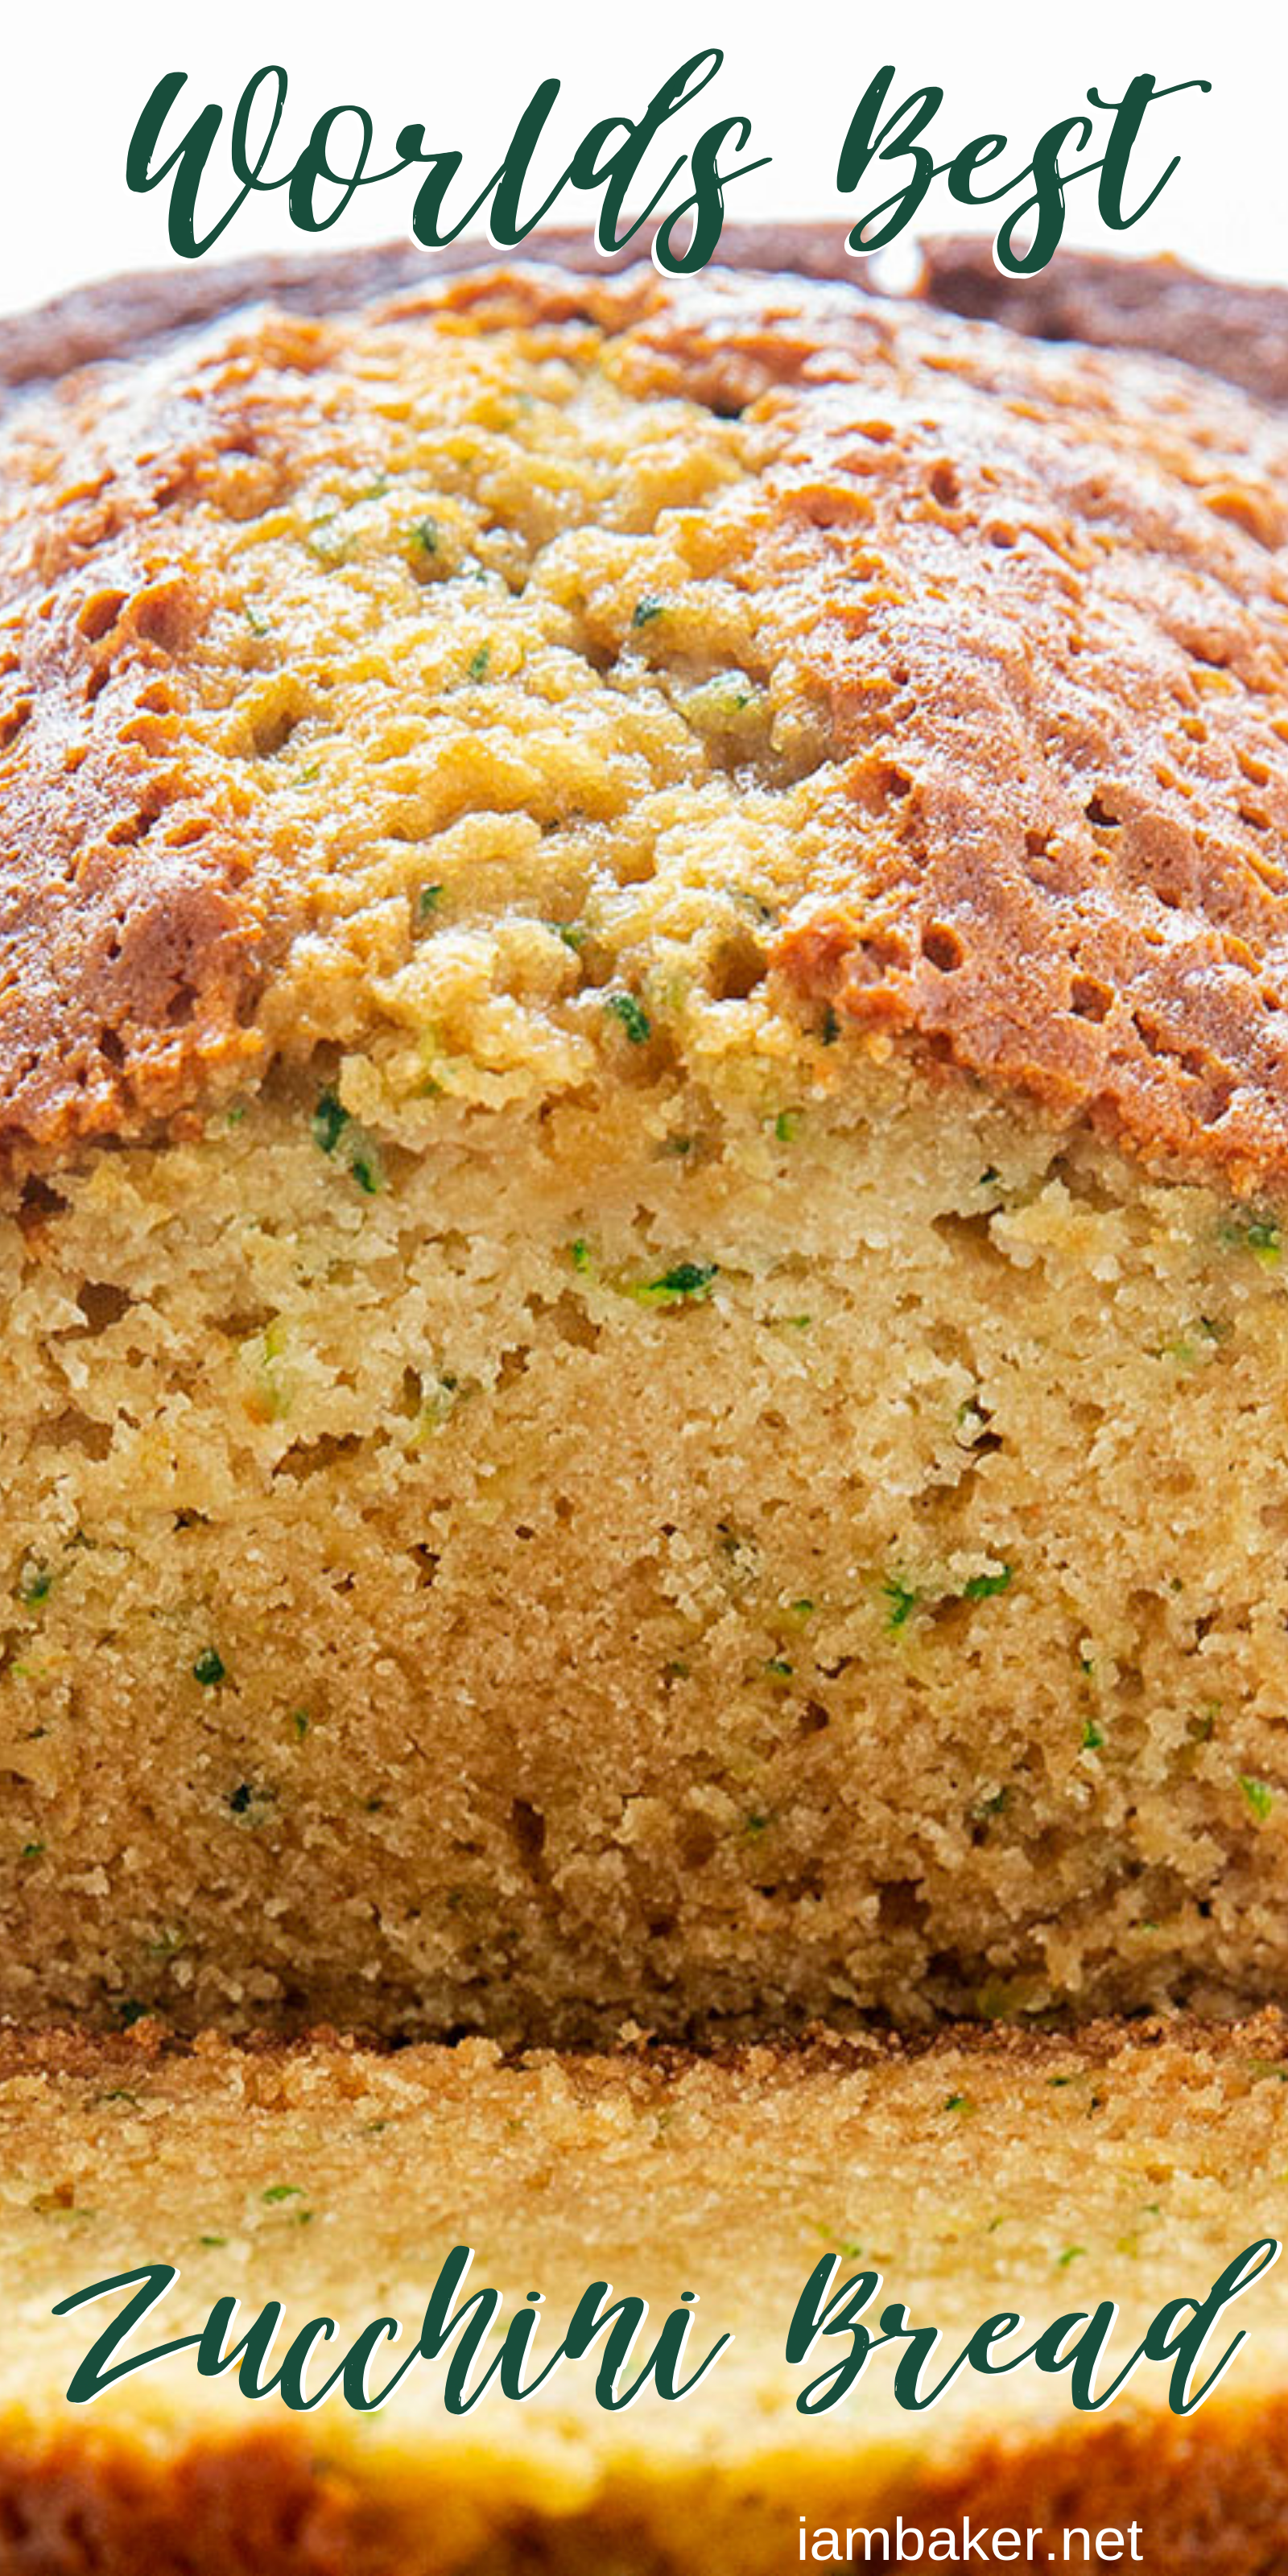 This recipe was vigorously tested... then perfected!